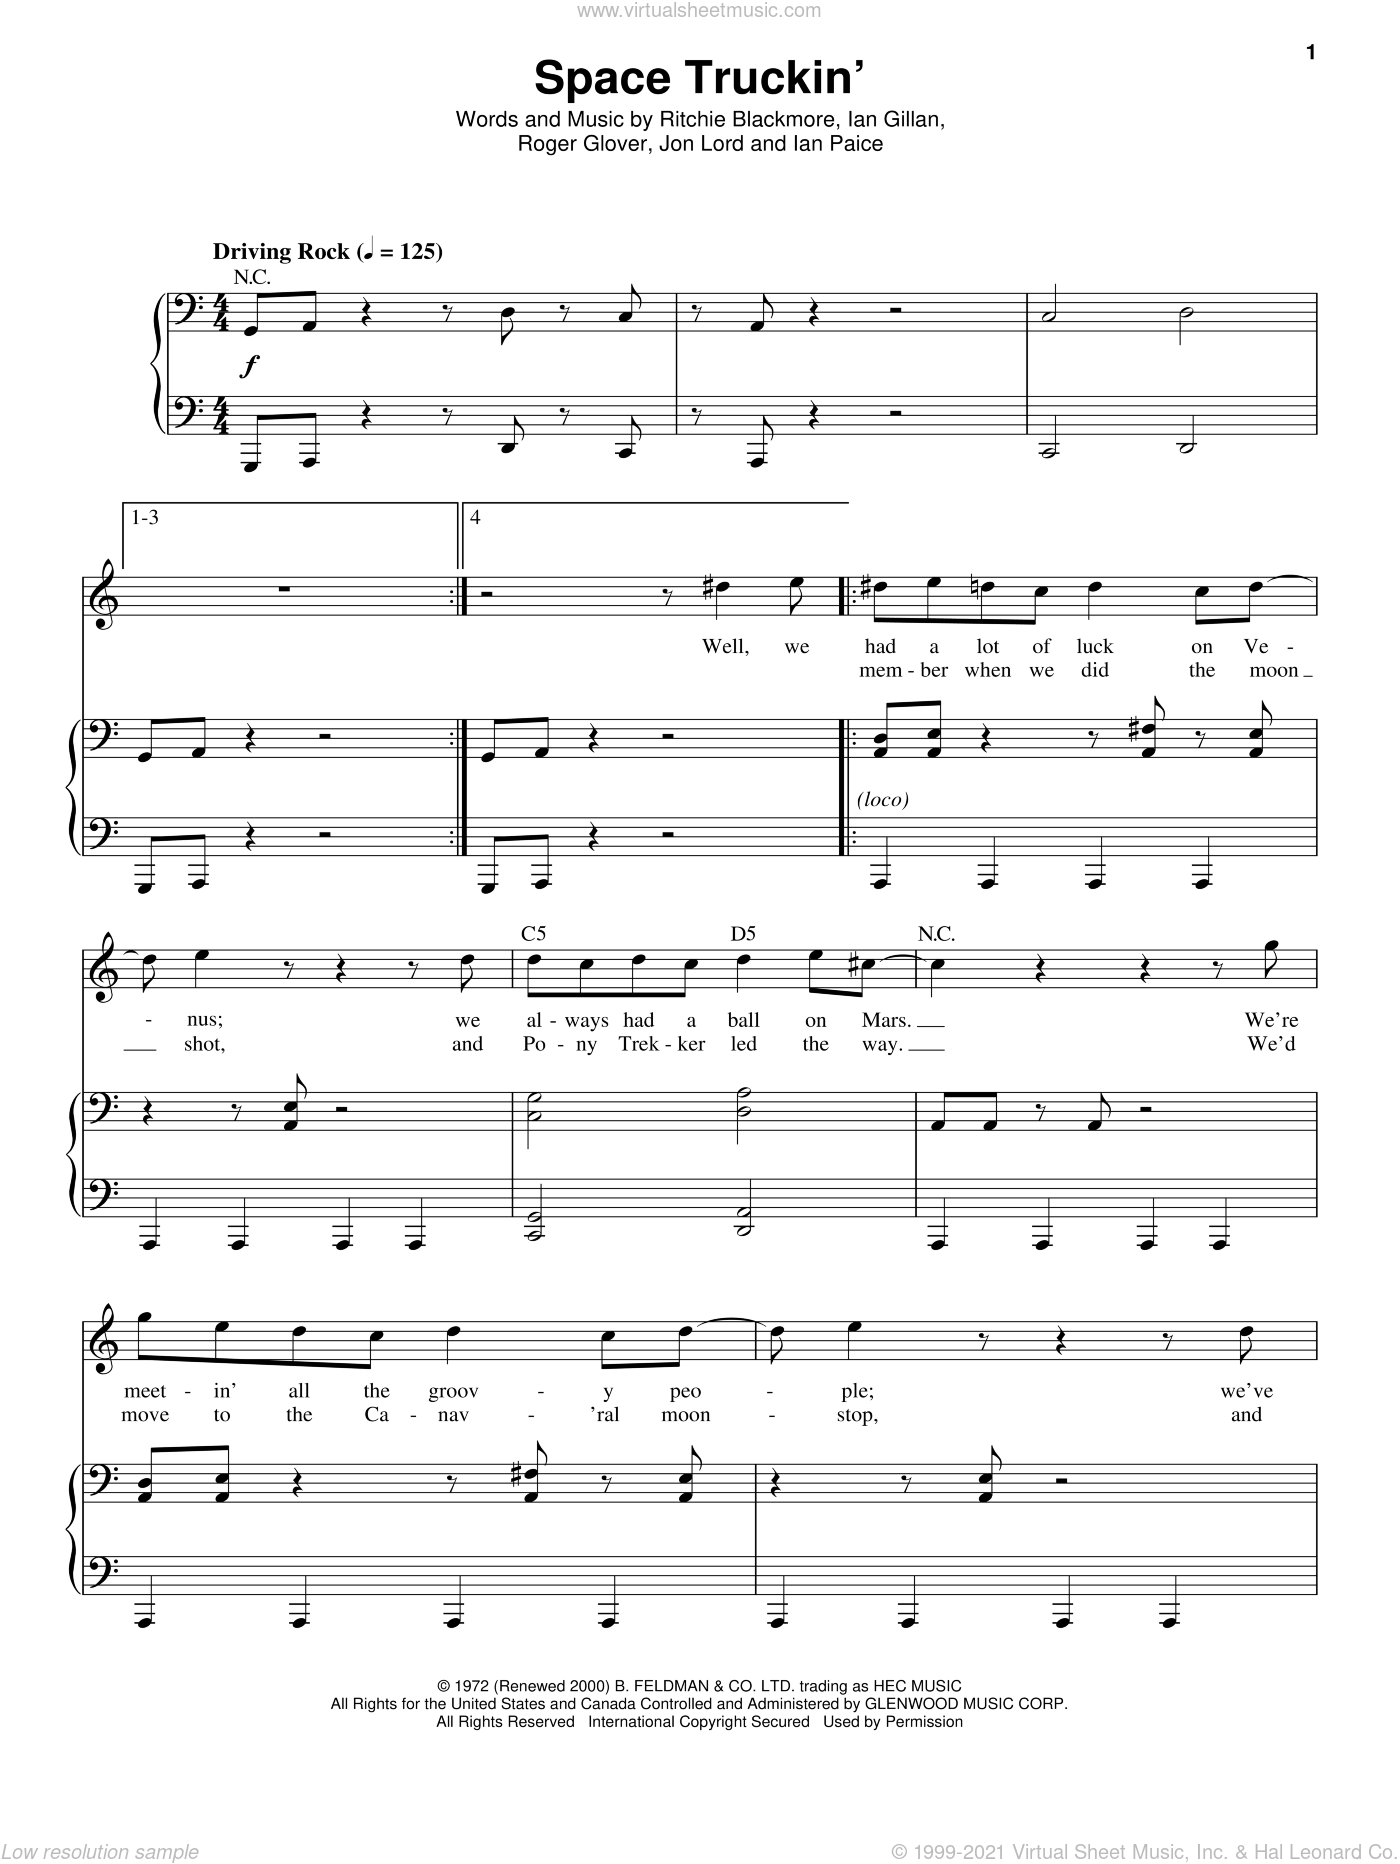 Space Truckin' sheet music for voice and piano by Deep Purple, Ian Gillan, Ian Paice, Jon Lord, Ritchie Blackmore and Roger Glover, intermediate. Score Image Preview.